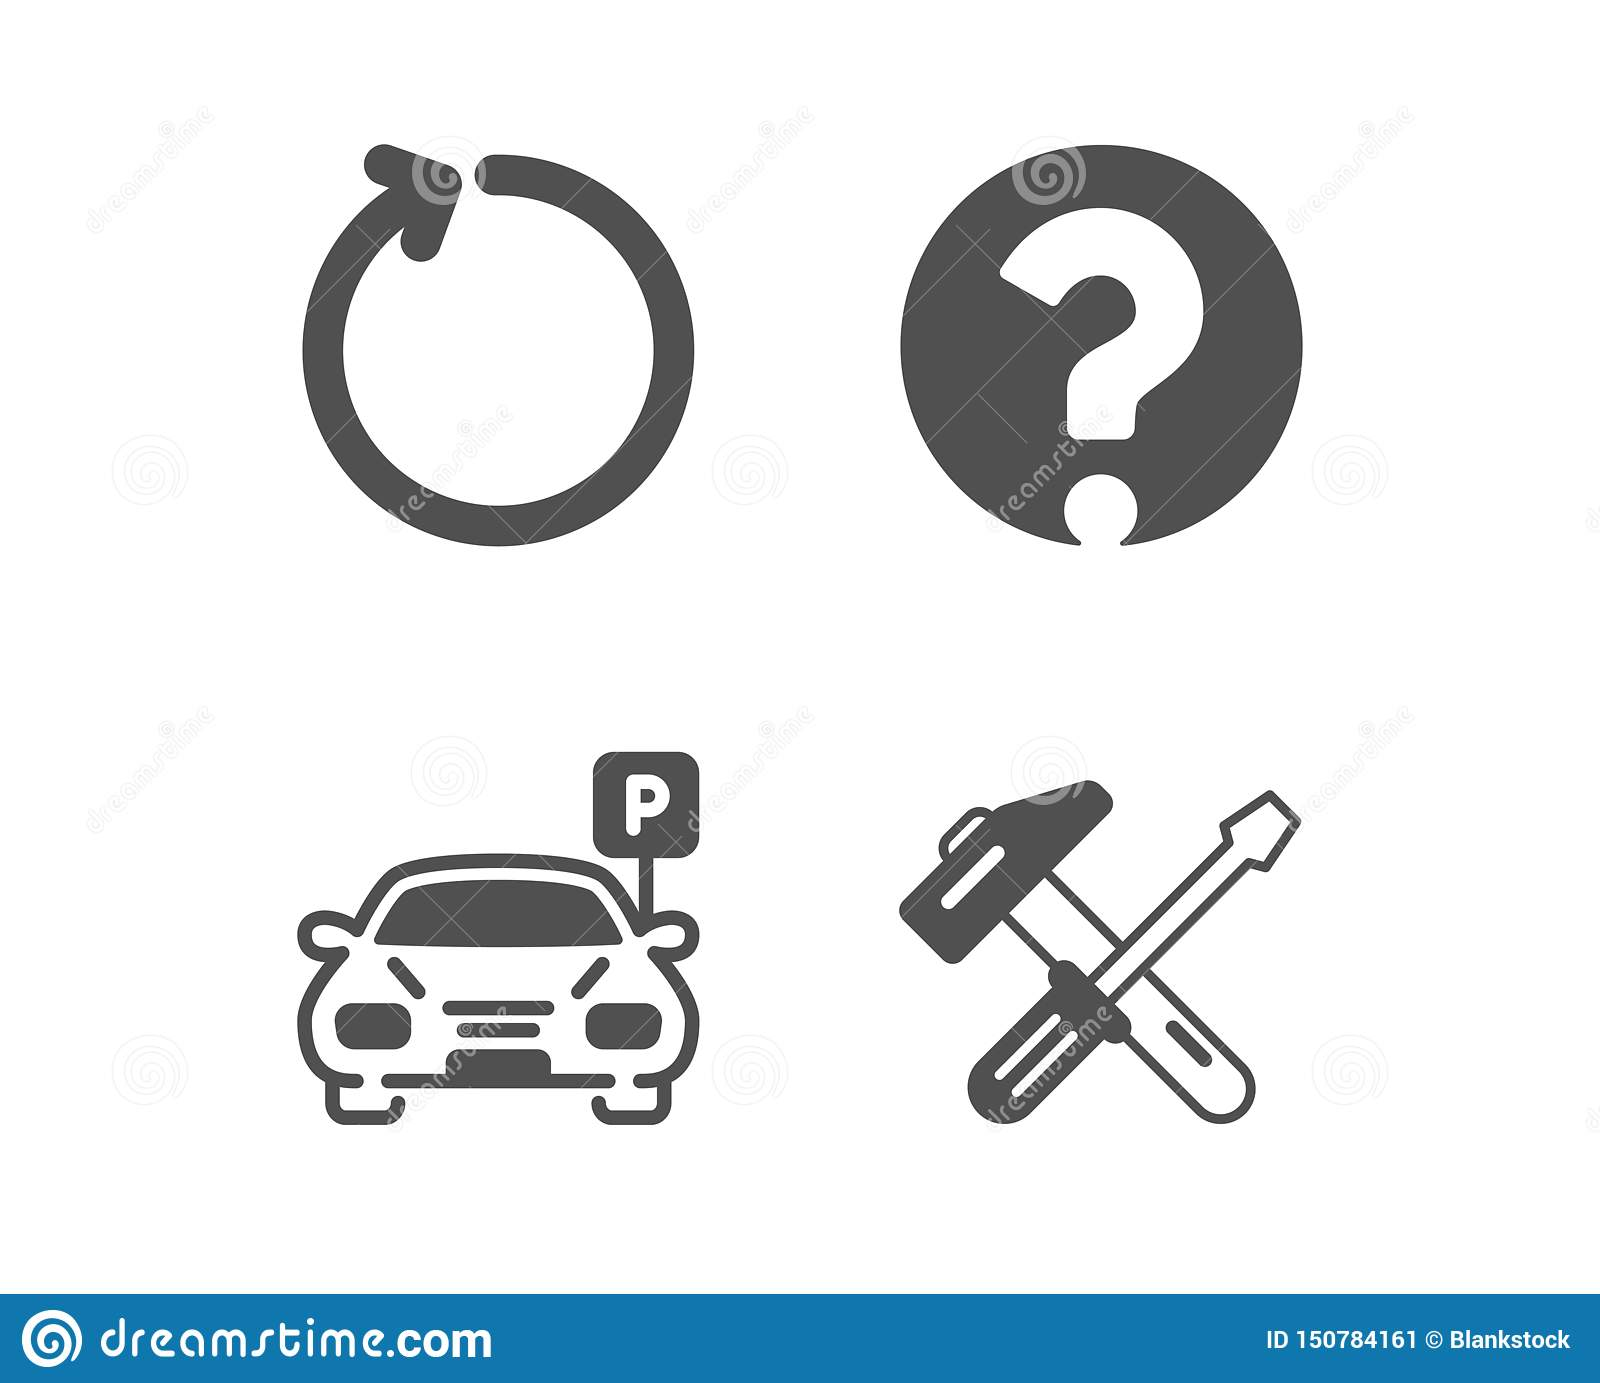 Question Mark Loop And Parking Icons Hammer Tool Sign Ask Support Refresh Car Park Repair Screwdriver Vector Stock Vector Illustration Of Restoration Black 150784161